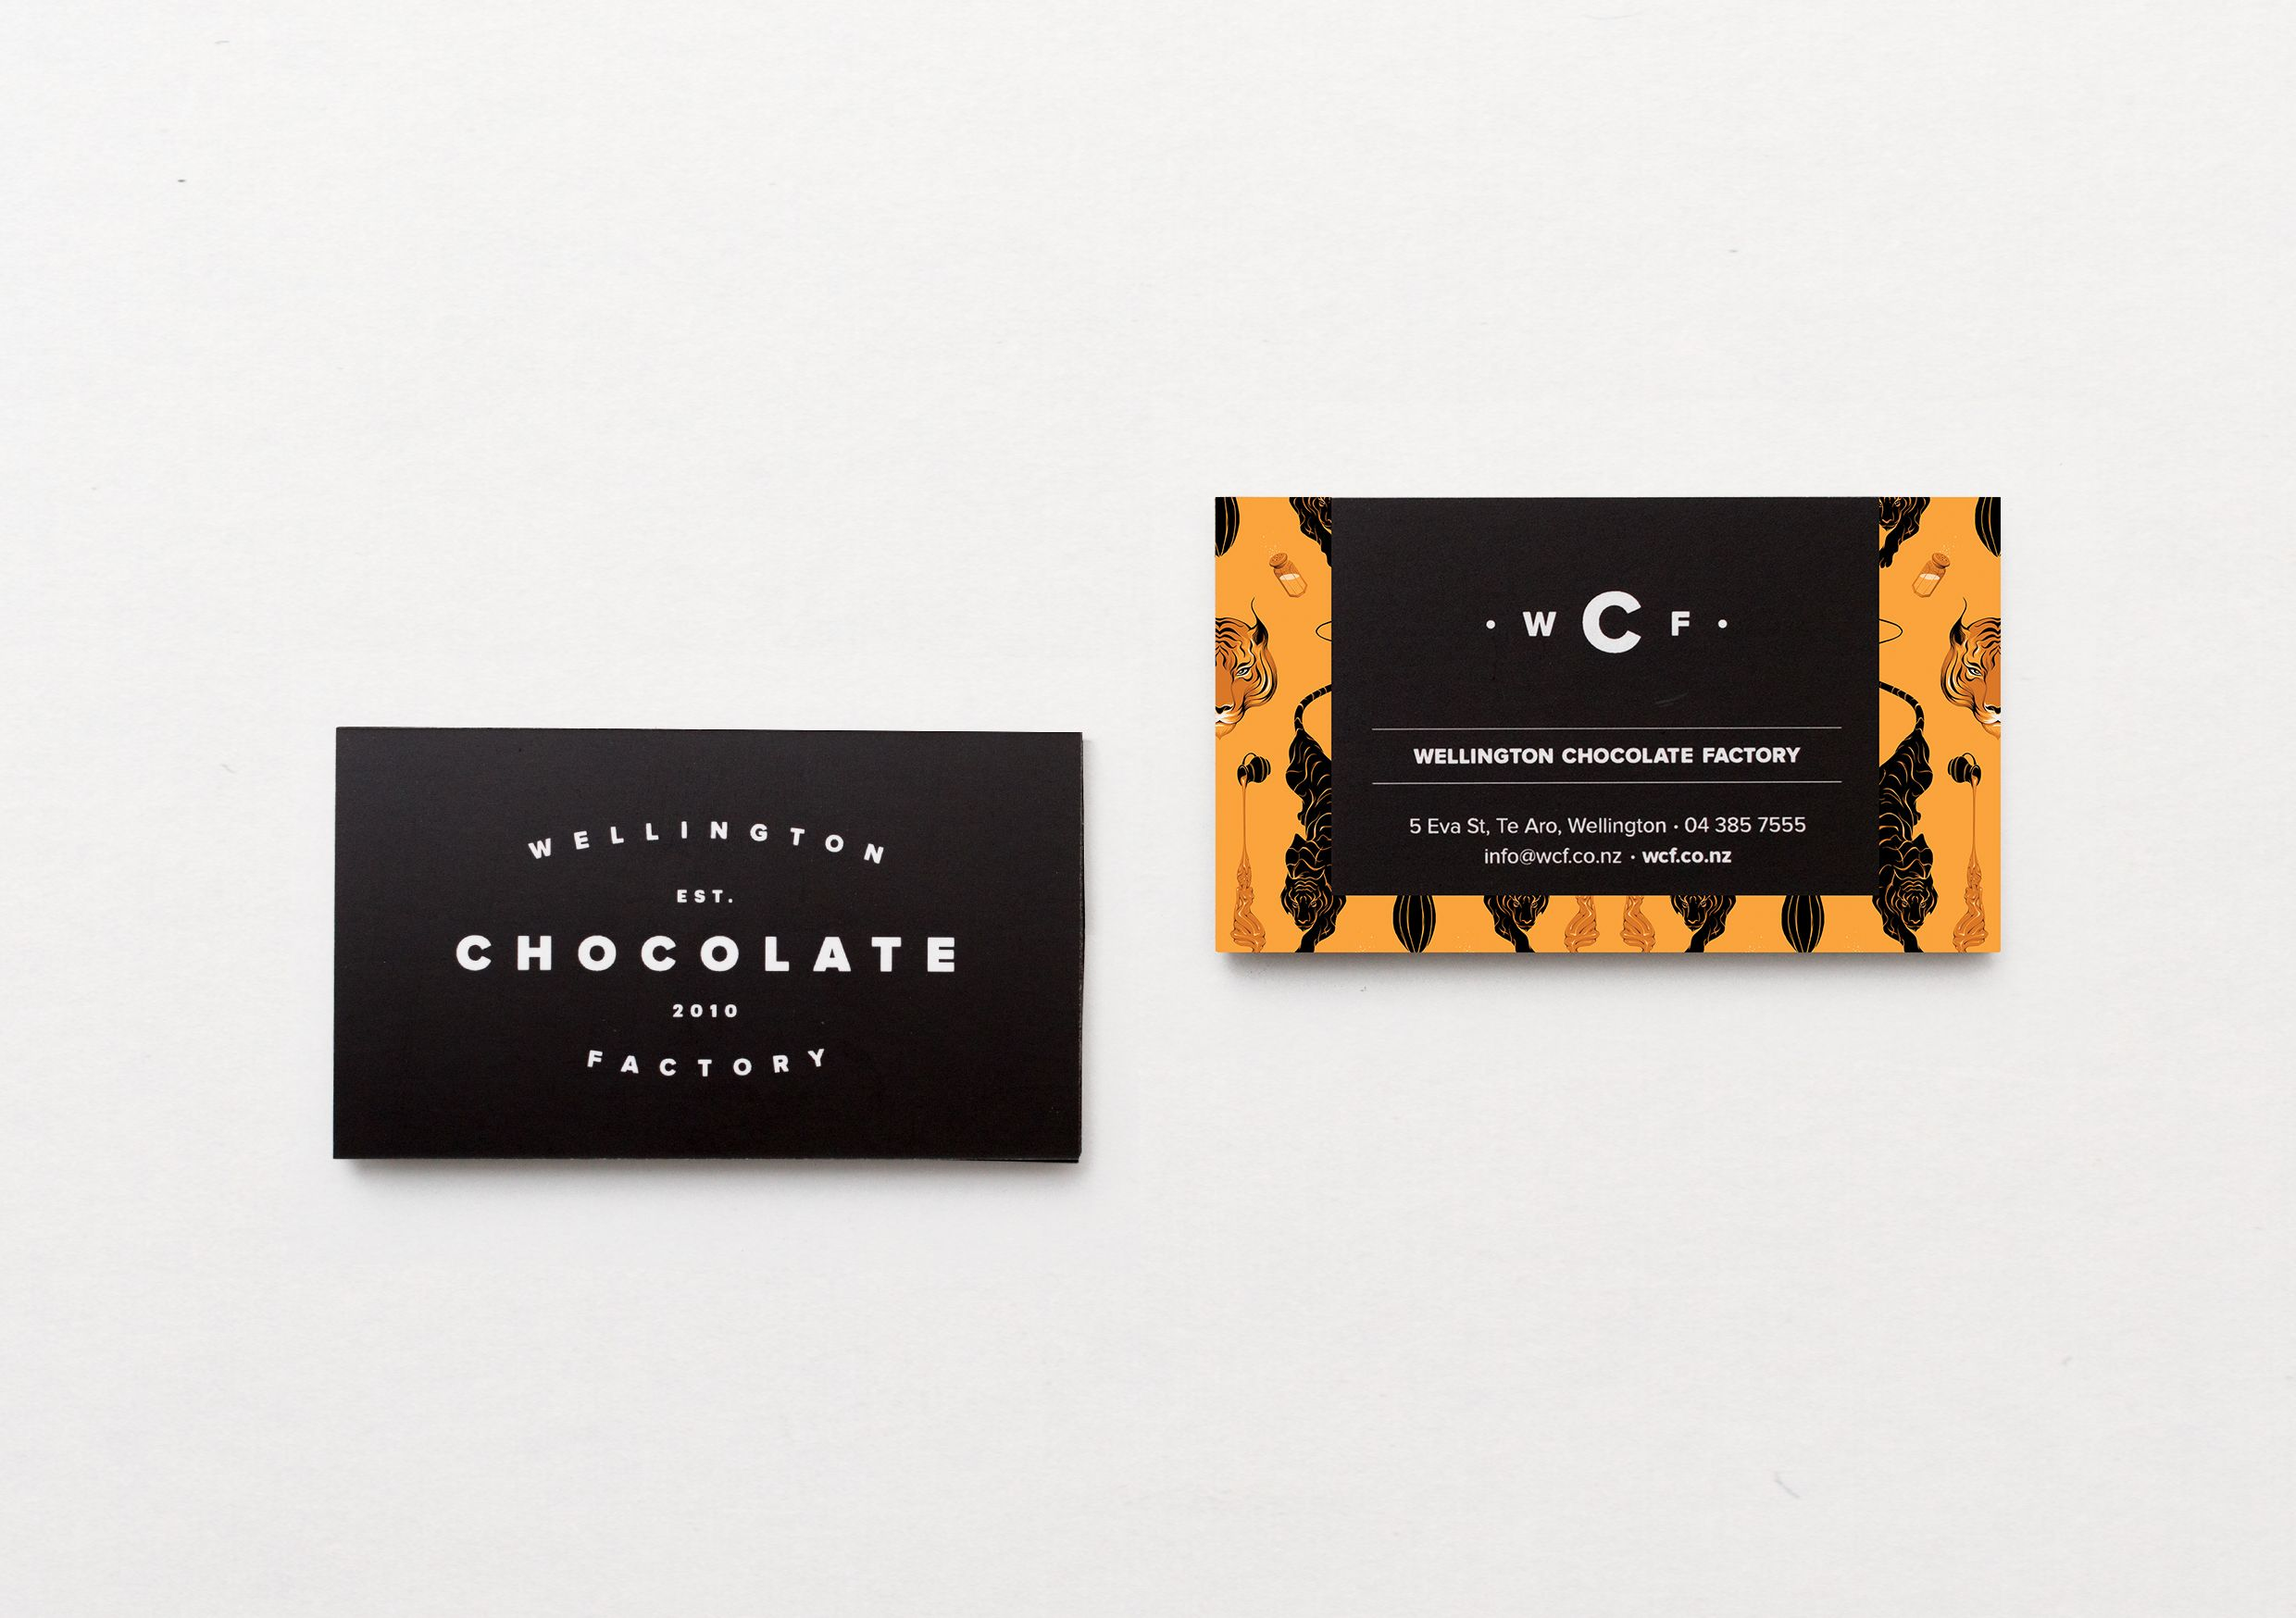 Wellington Chocolate Factory - Business Cards by Inject Design ...